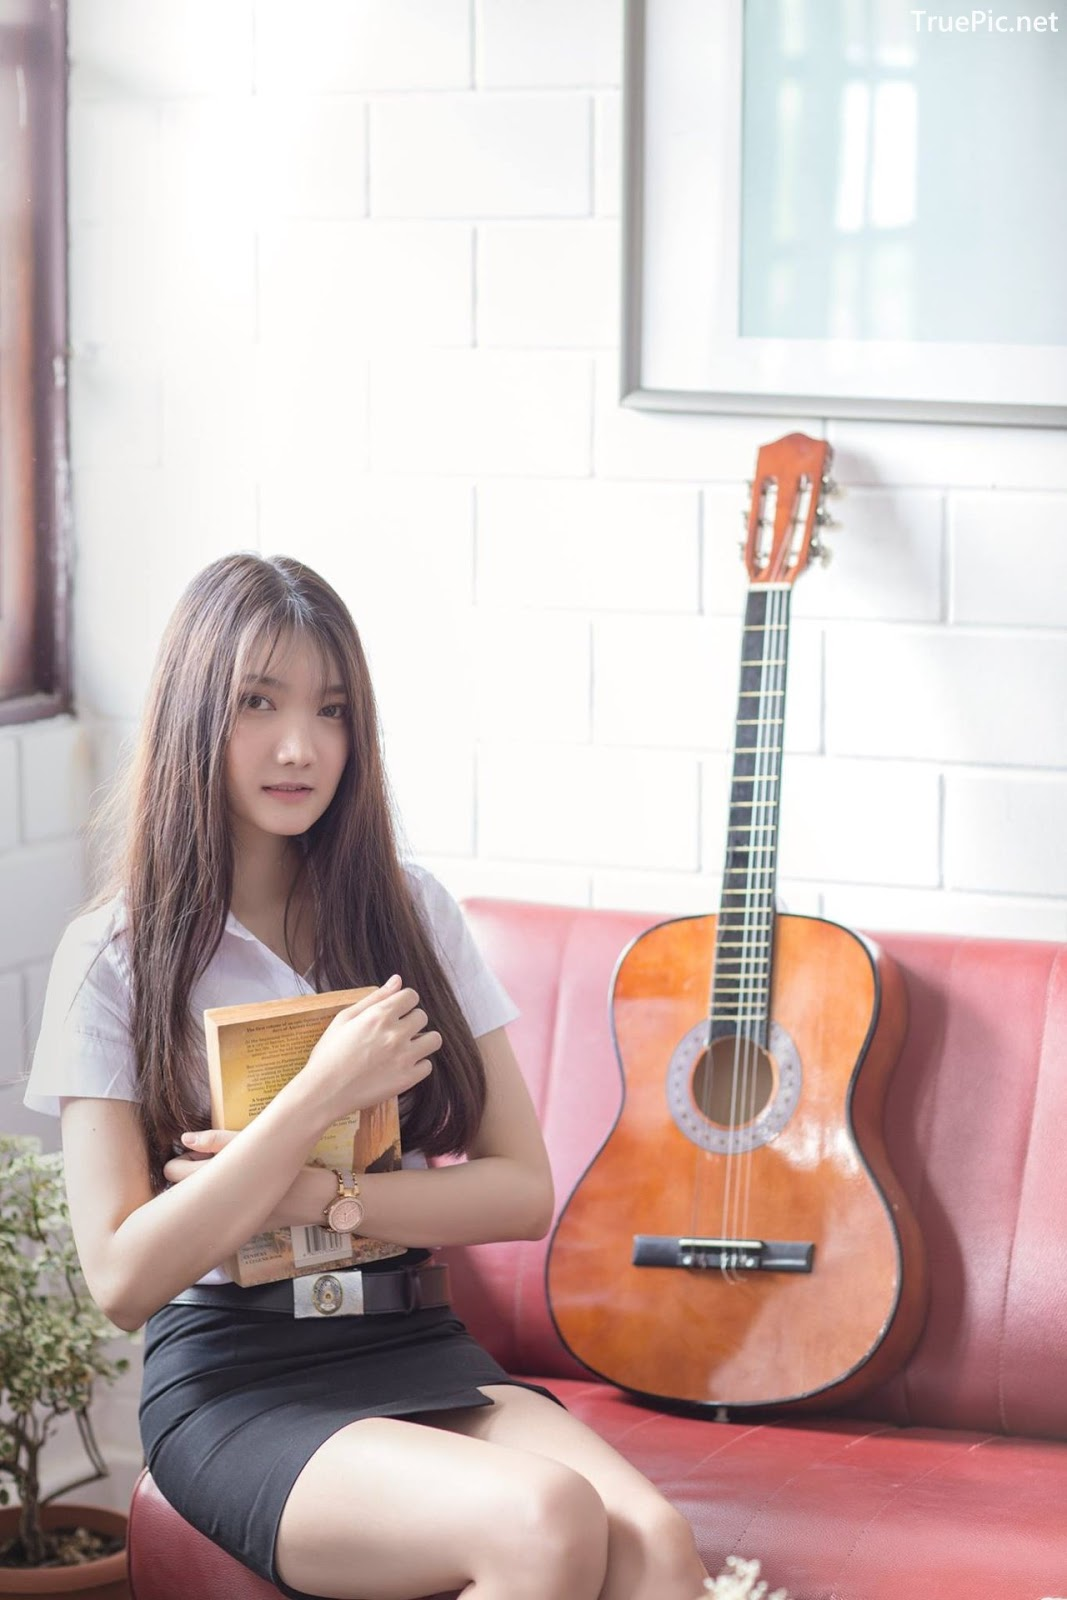 Image-Thailand-Cute-Model-Creammy-Chanama-Concept-Innocent-Student-Girl-TruePic.net- Picture-4